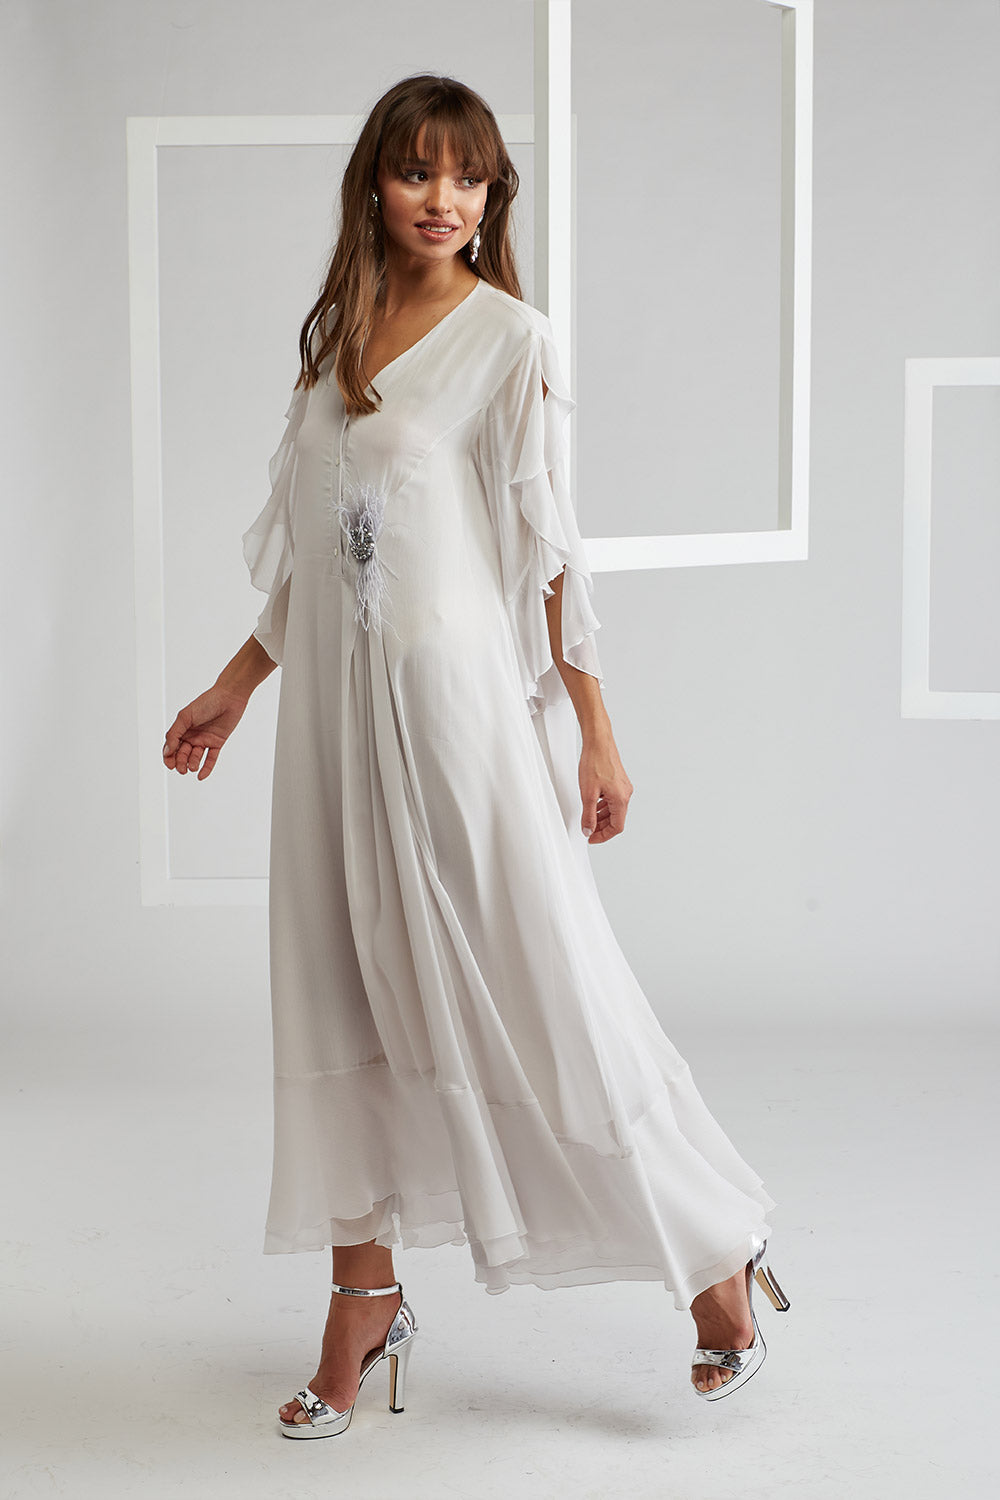 Silk Chiffon Trimmed Dress With Furry Pin - Off White